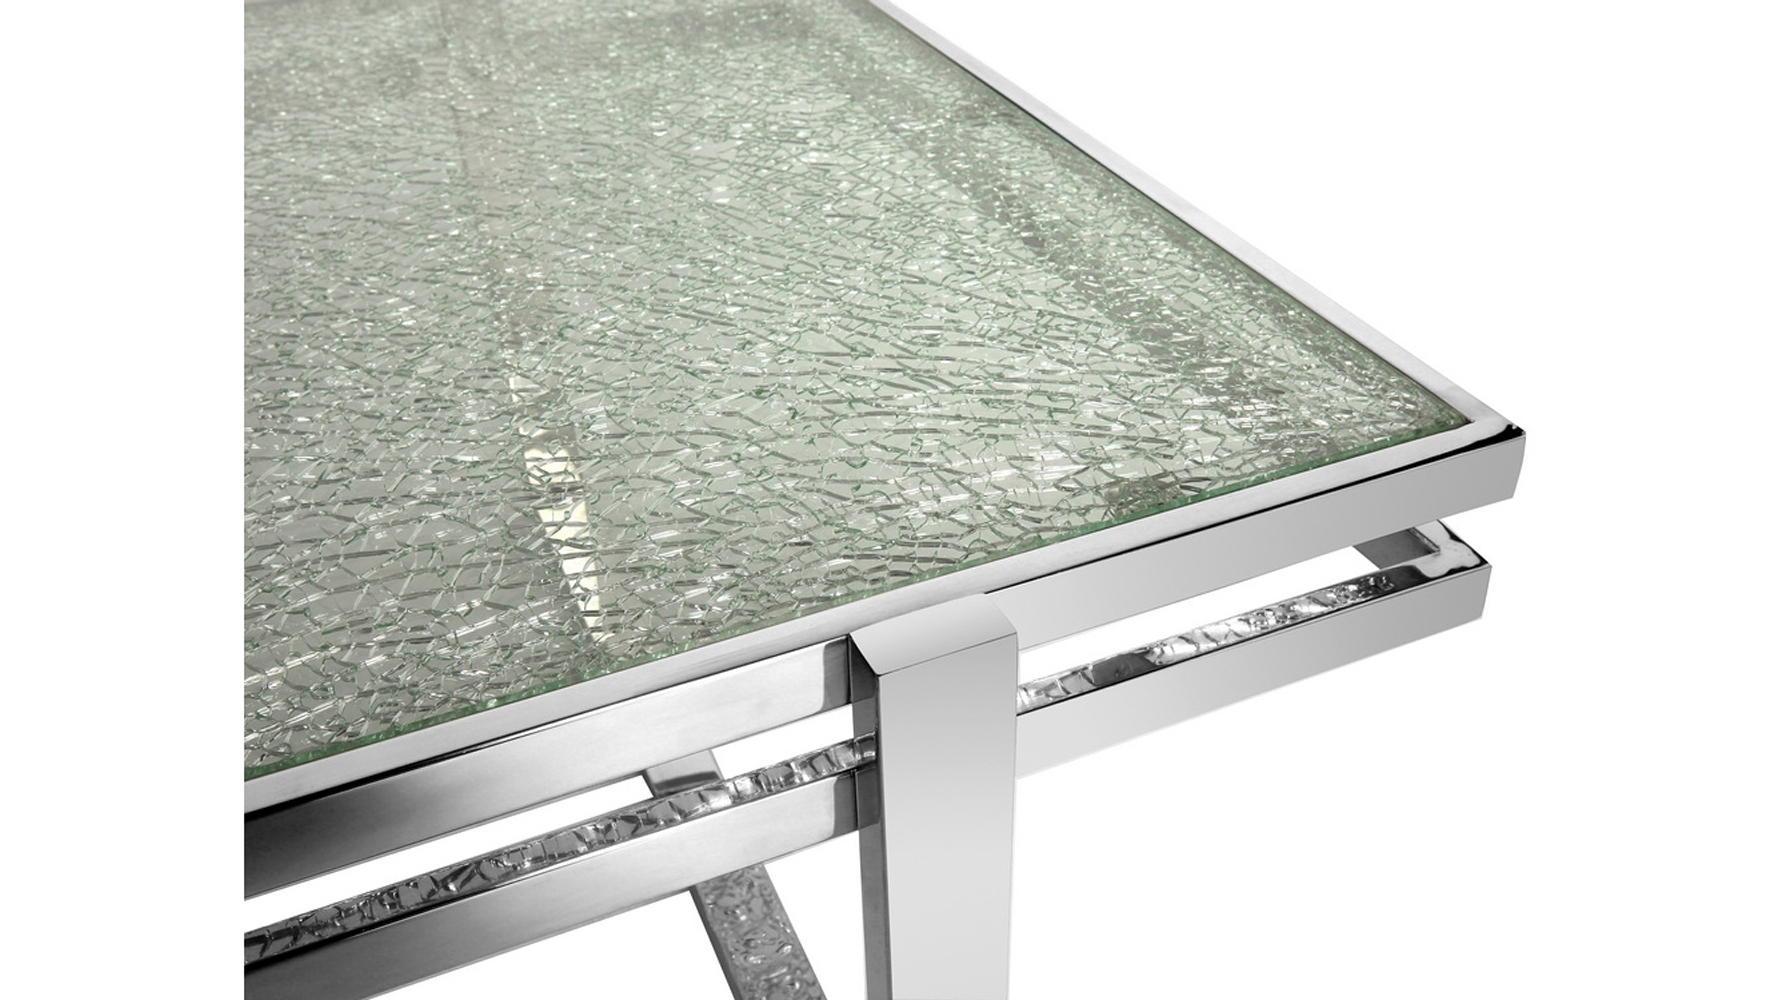 Most Up To Date Mosaic Dining Tables For Sale Pertaining To Mosaic Dining Table Cracked Glass Top Stainless Steel Bas (View 19 of 25)